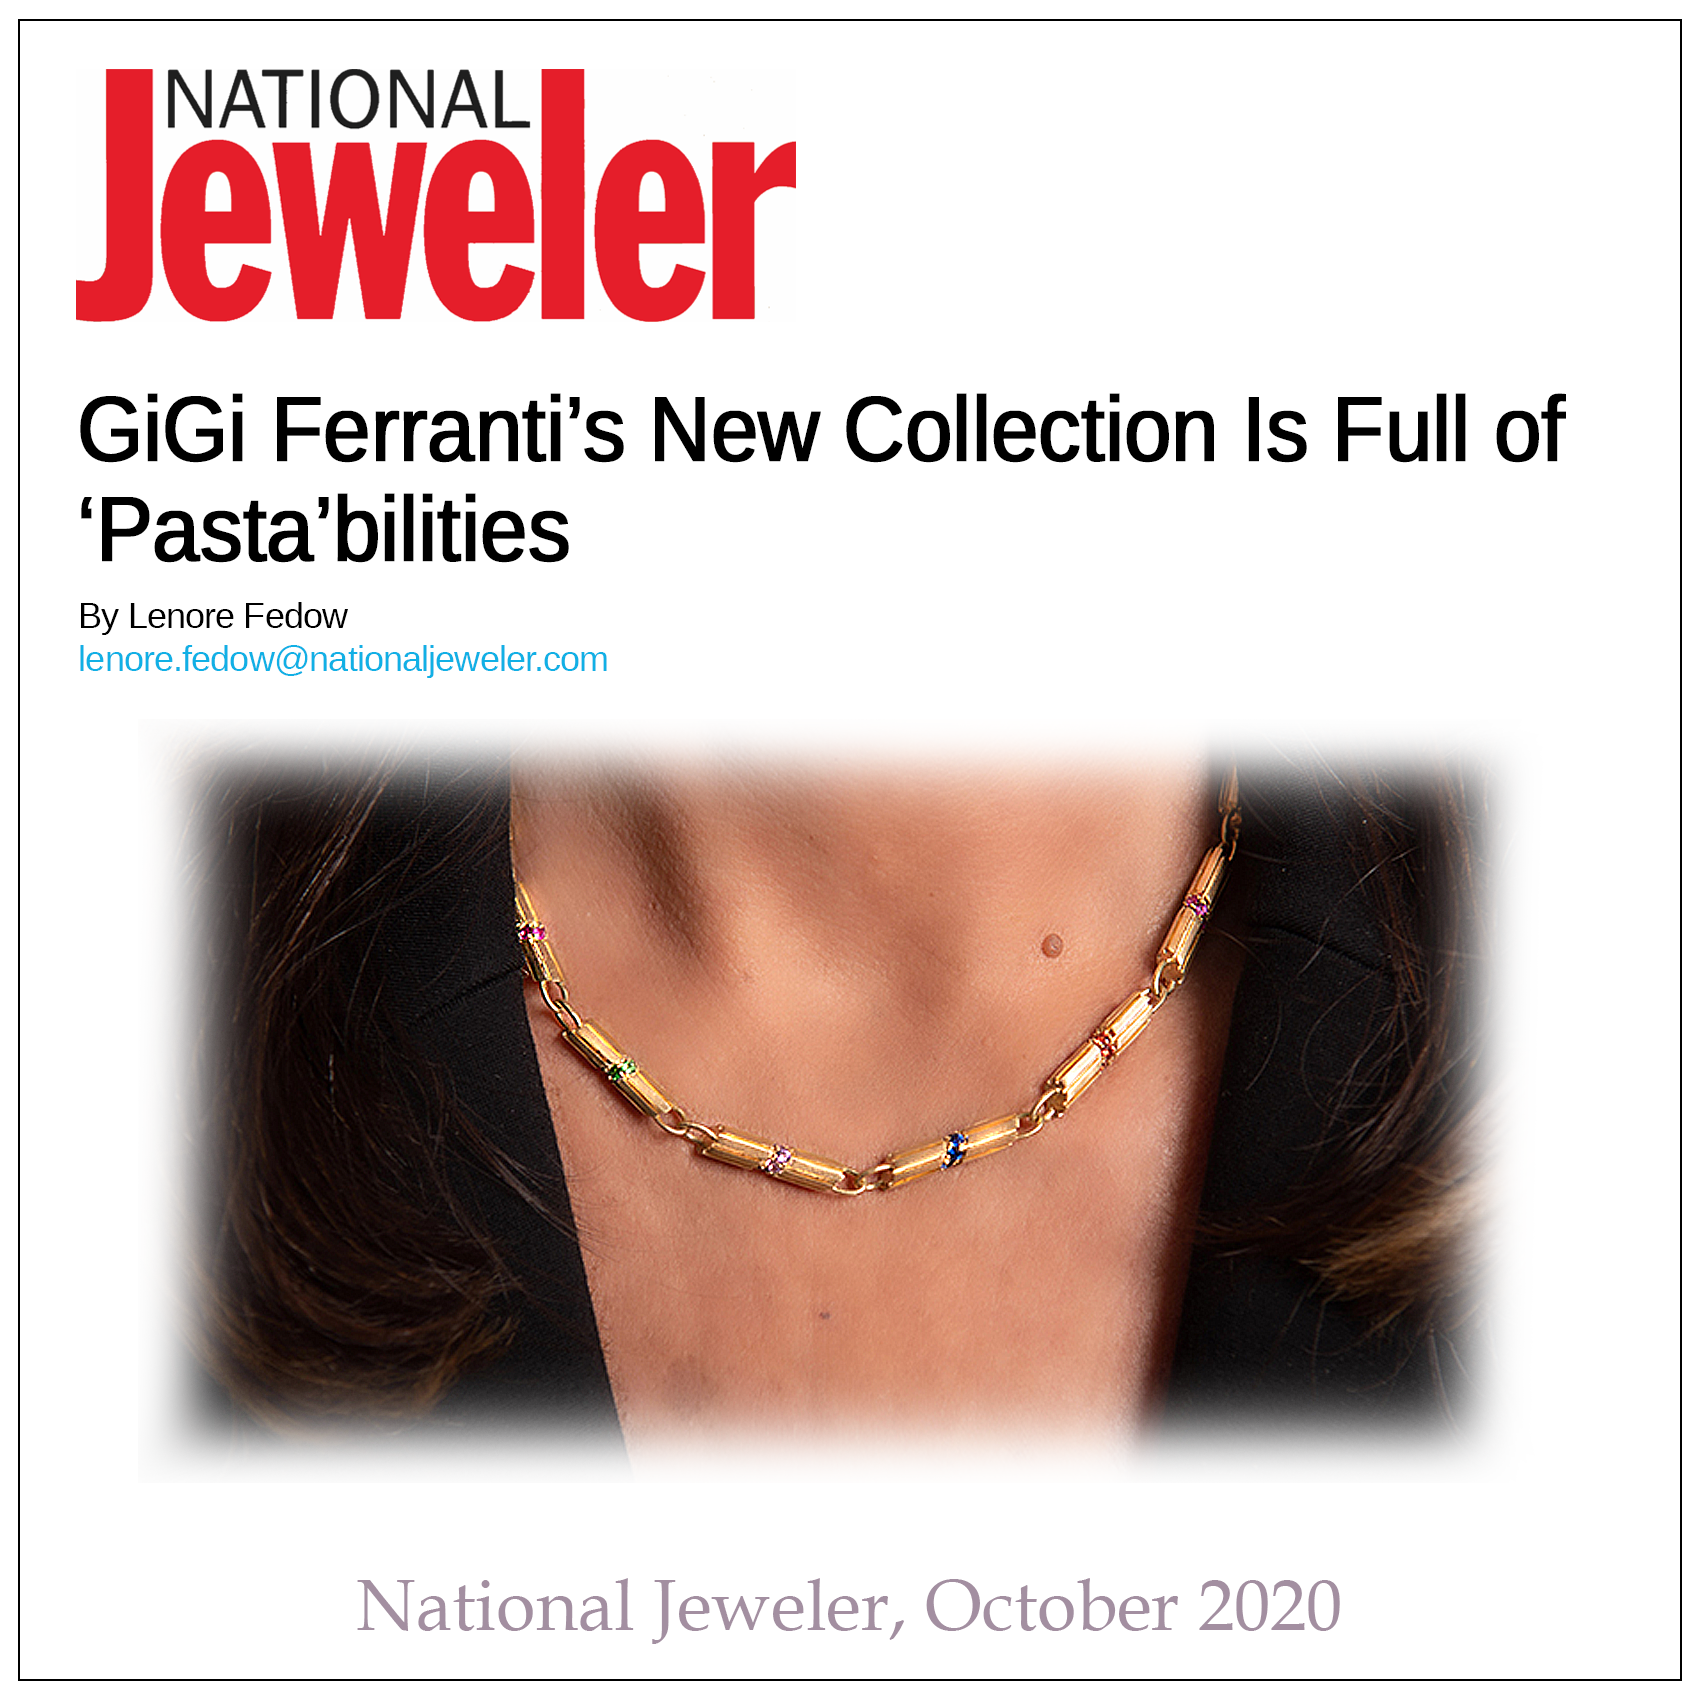 national-jeweler-oct-2020.png